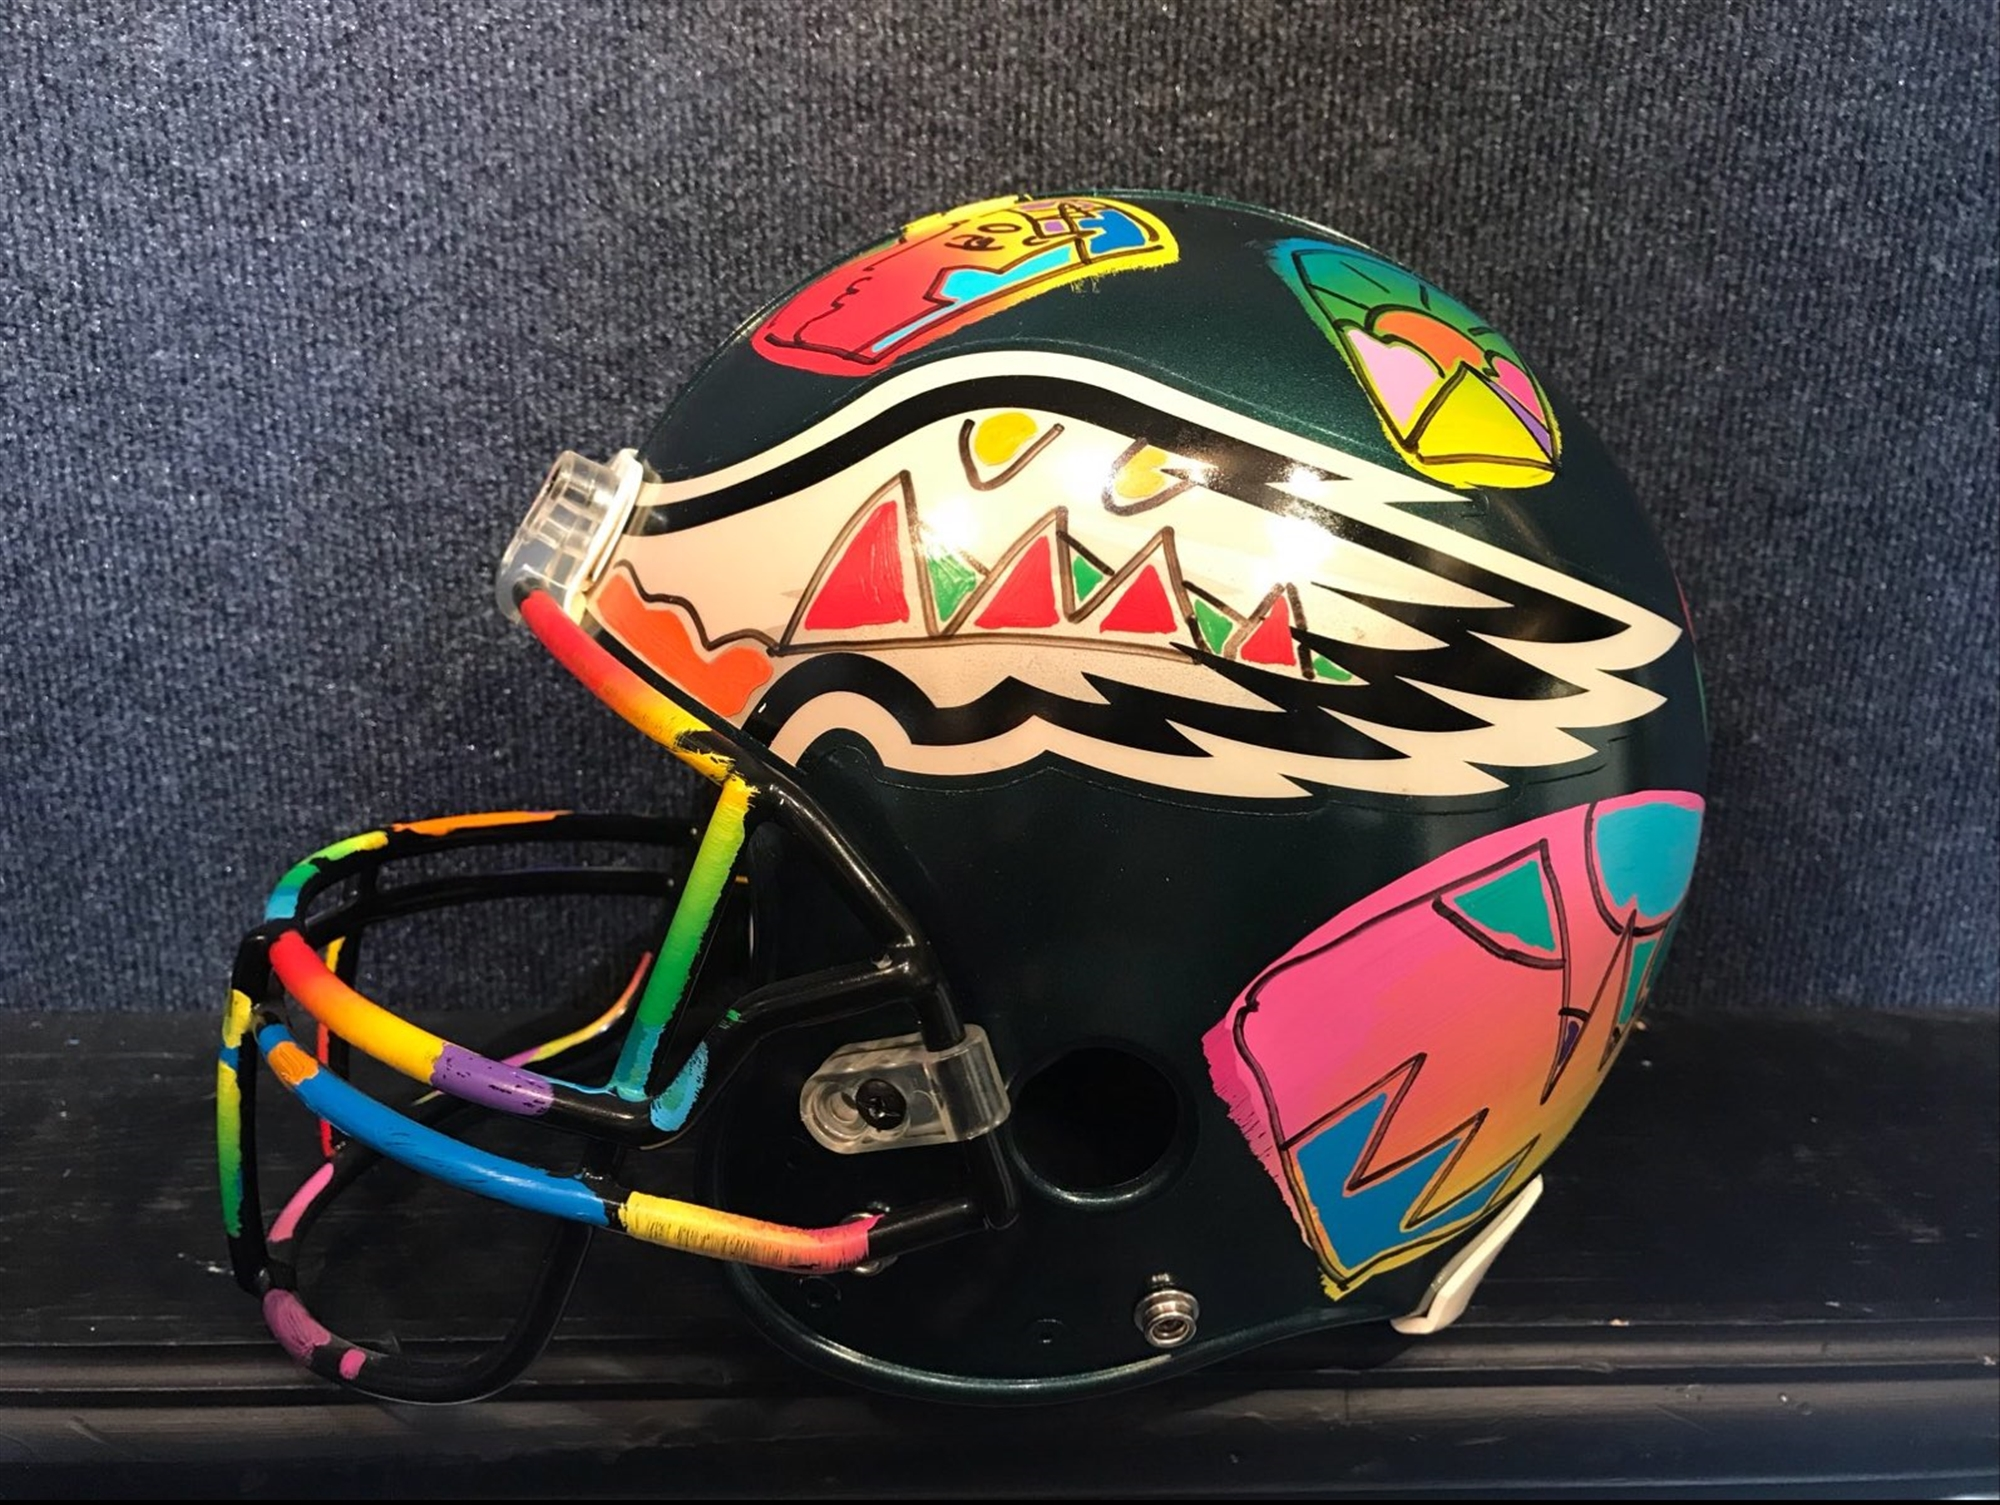 Eagles Full Size Helmet by Peter Max